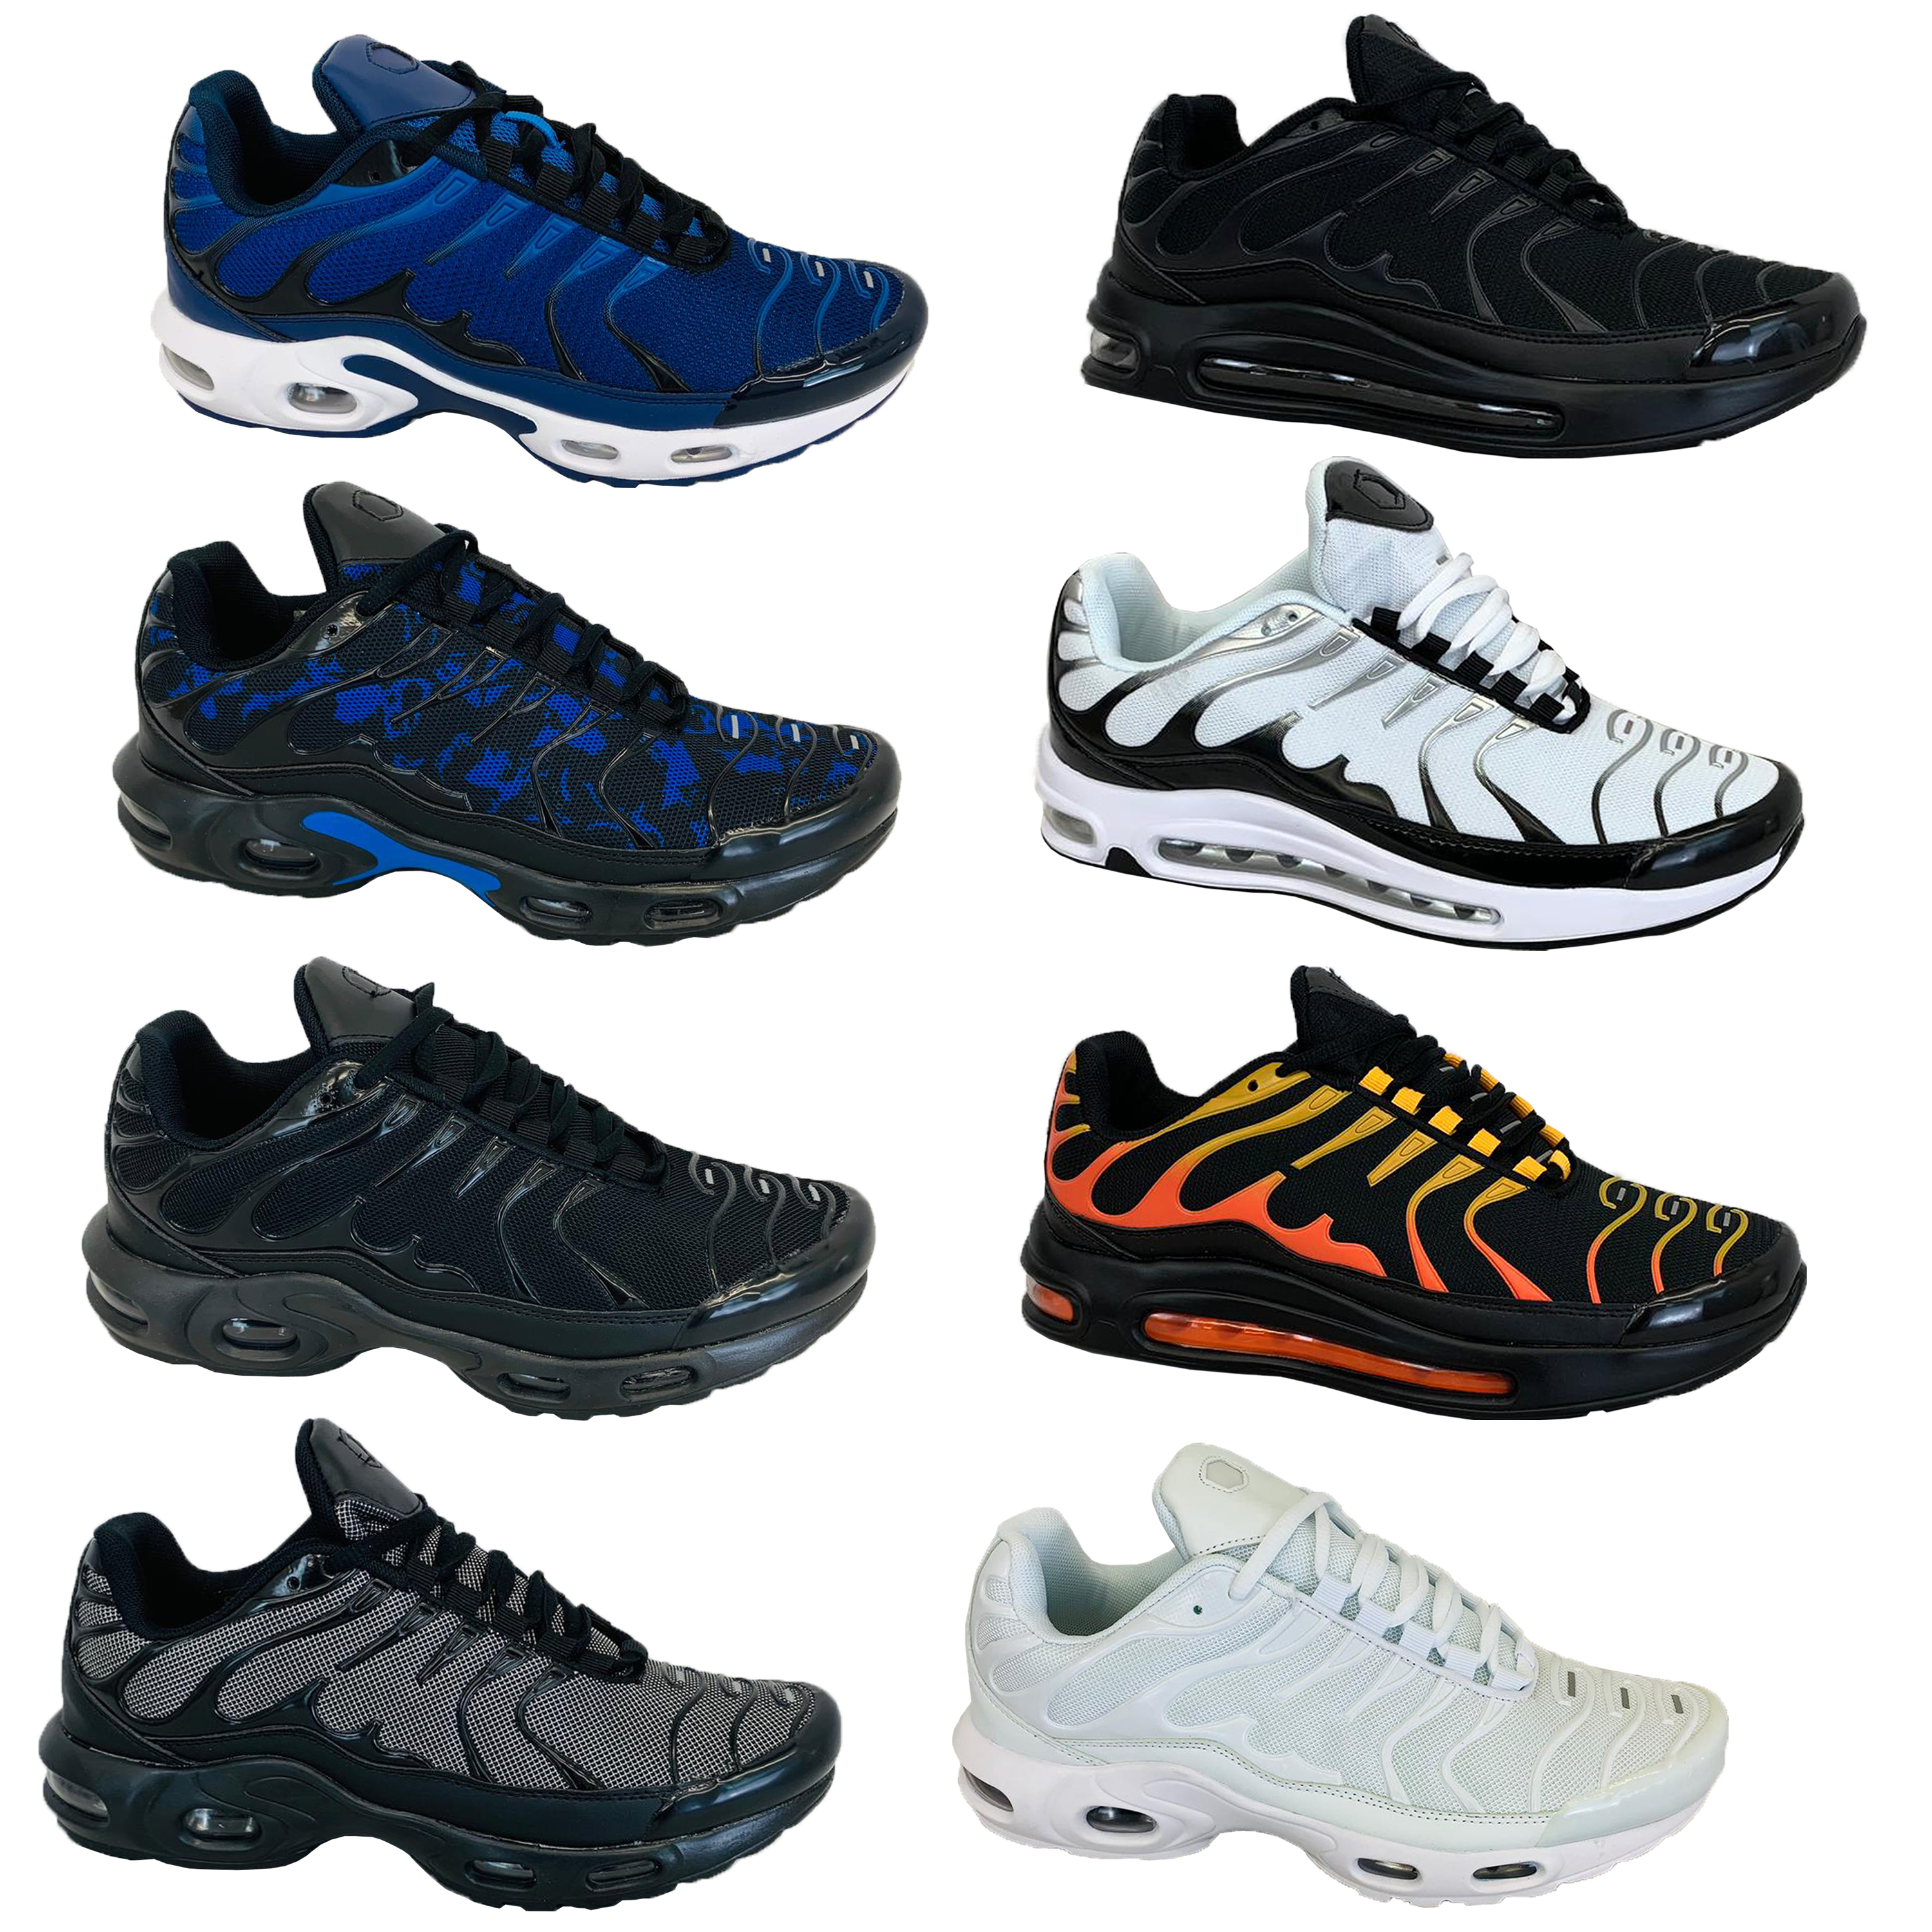 Mens-Bubble-Trainers-Lace-Up-Running-Shoes-Sneakers-Sports-Jogging-Fitness-Gym thumbnail 5